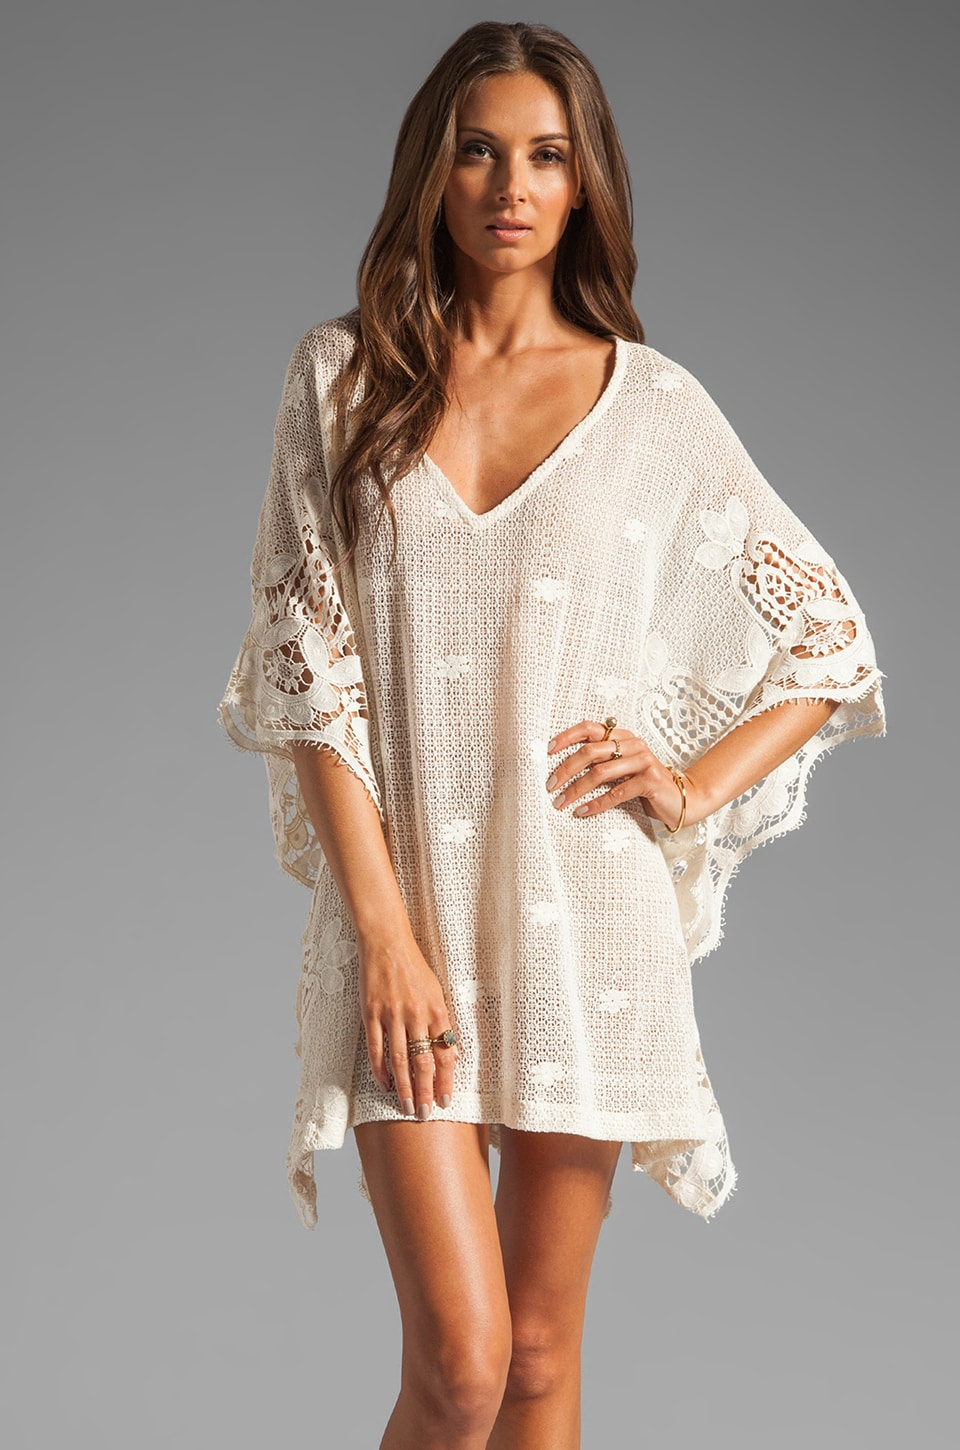 eberjey Gypsy Traveler Farrah Cover Up in Natural